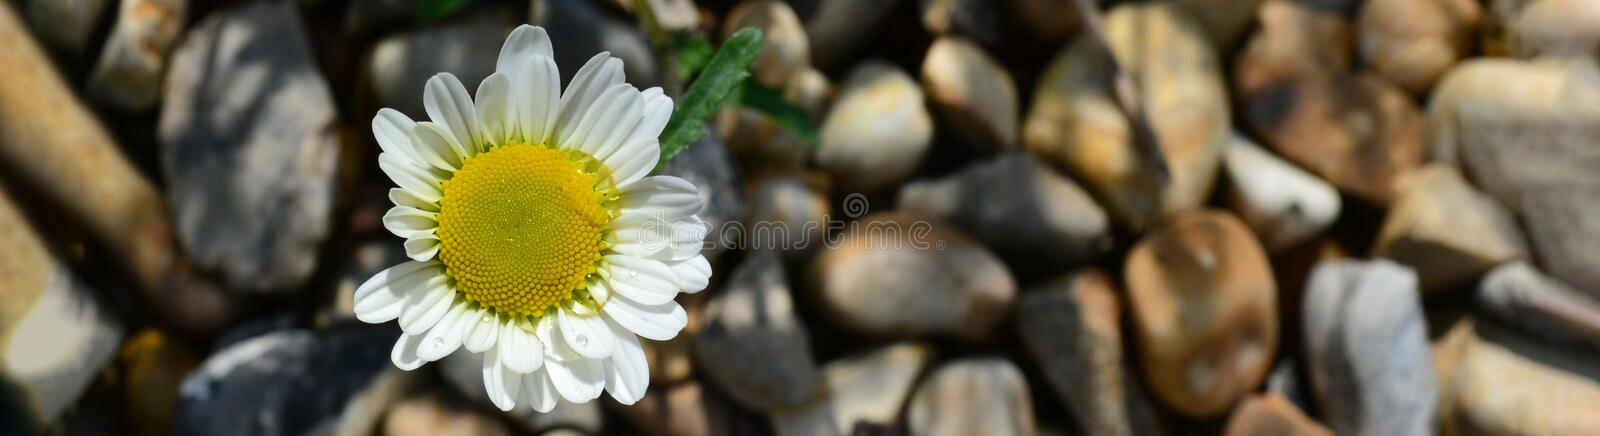 White camomile flower with green leaves. Spring and summer concept. Top view style with copy space for text. Background, beautiful, bloom, blossom, card royalty free stock images